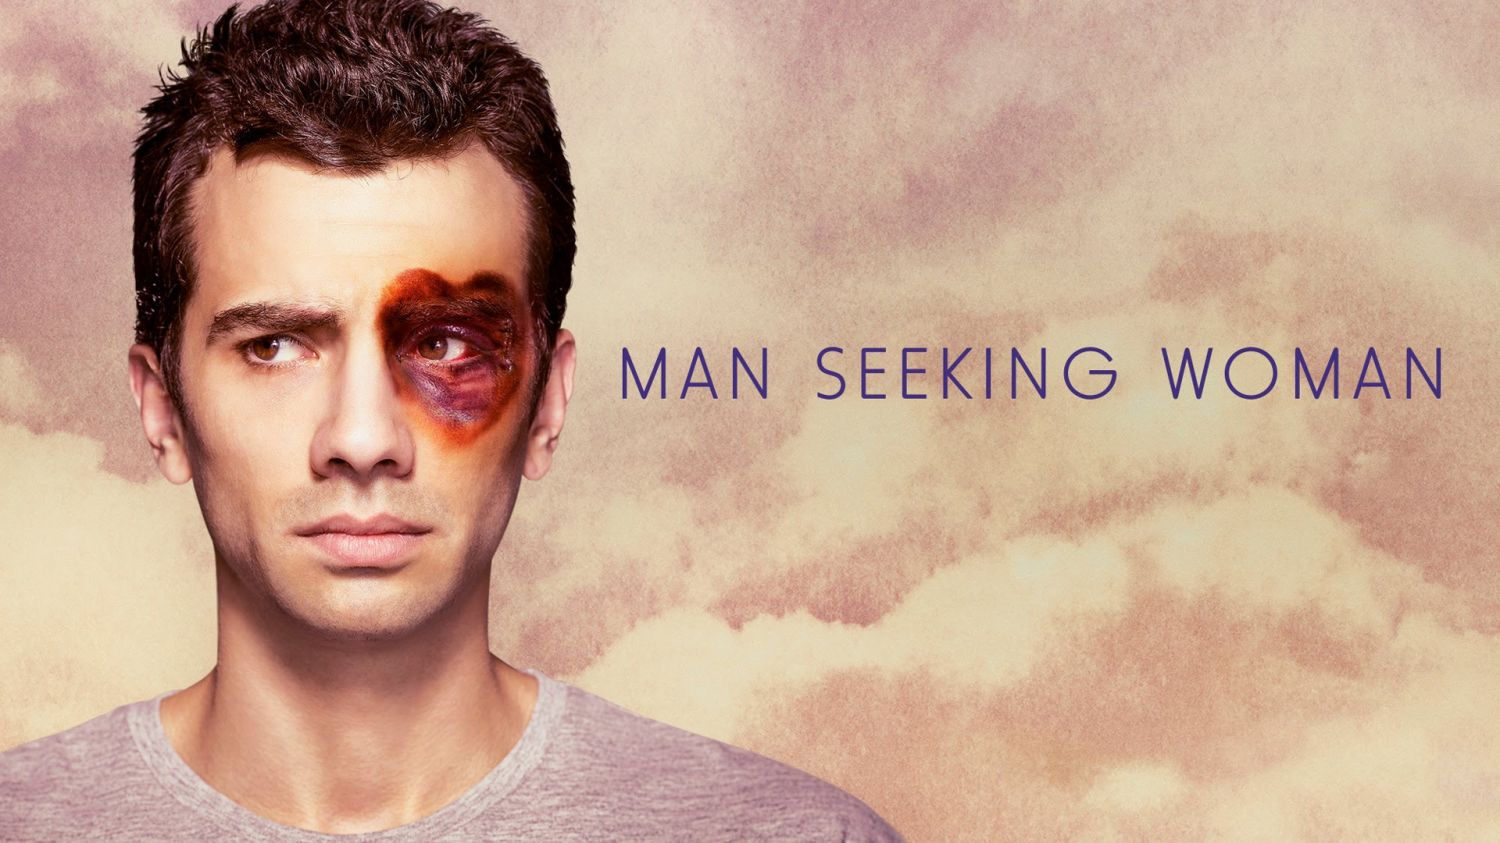 Man seeking women pitbull